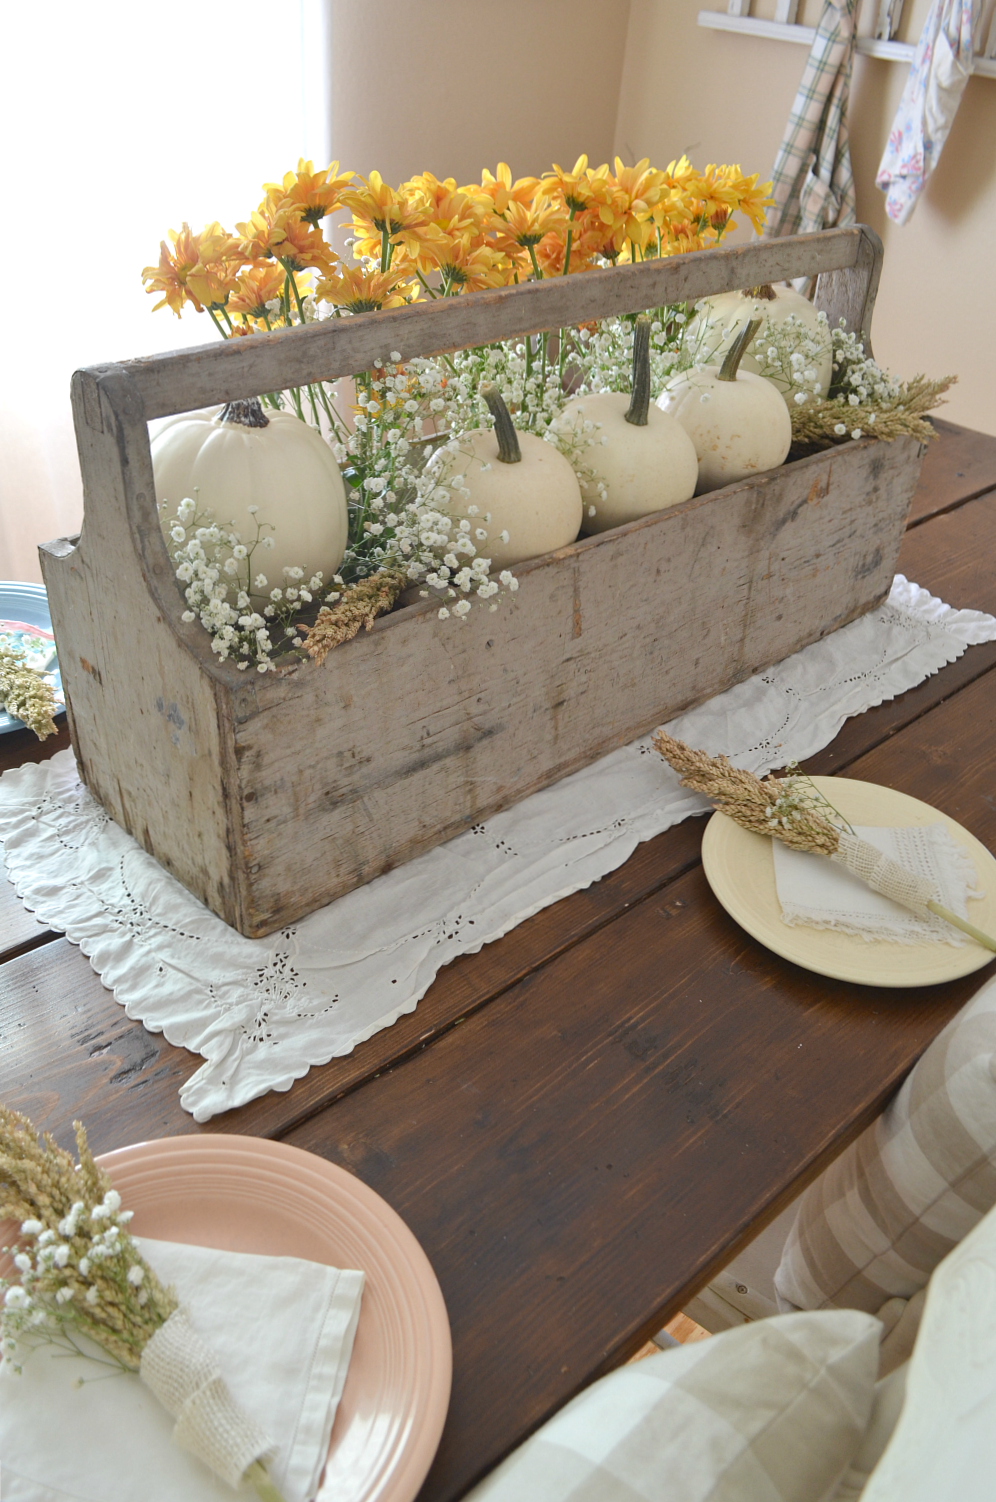 fall kitchen table centerpiece using old tool holder. contains five white pumpkins and white and yellow flowers